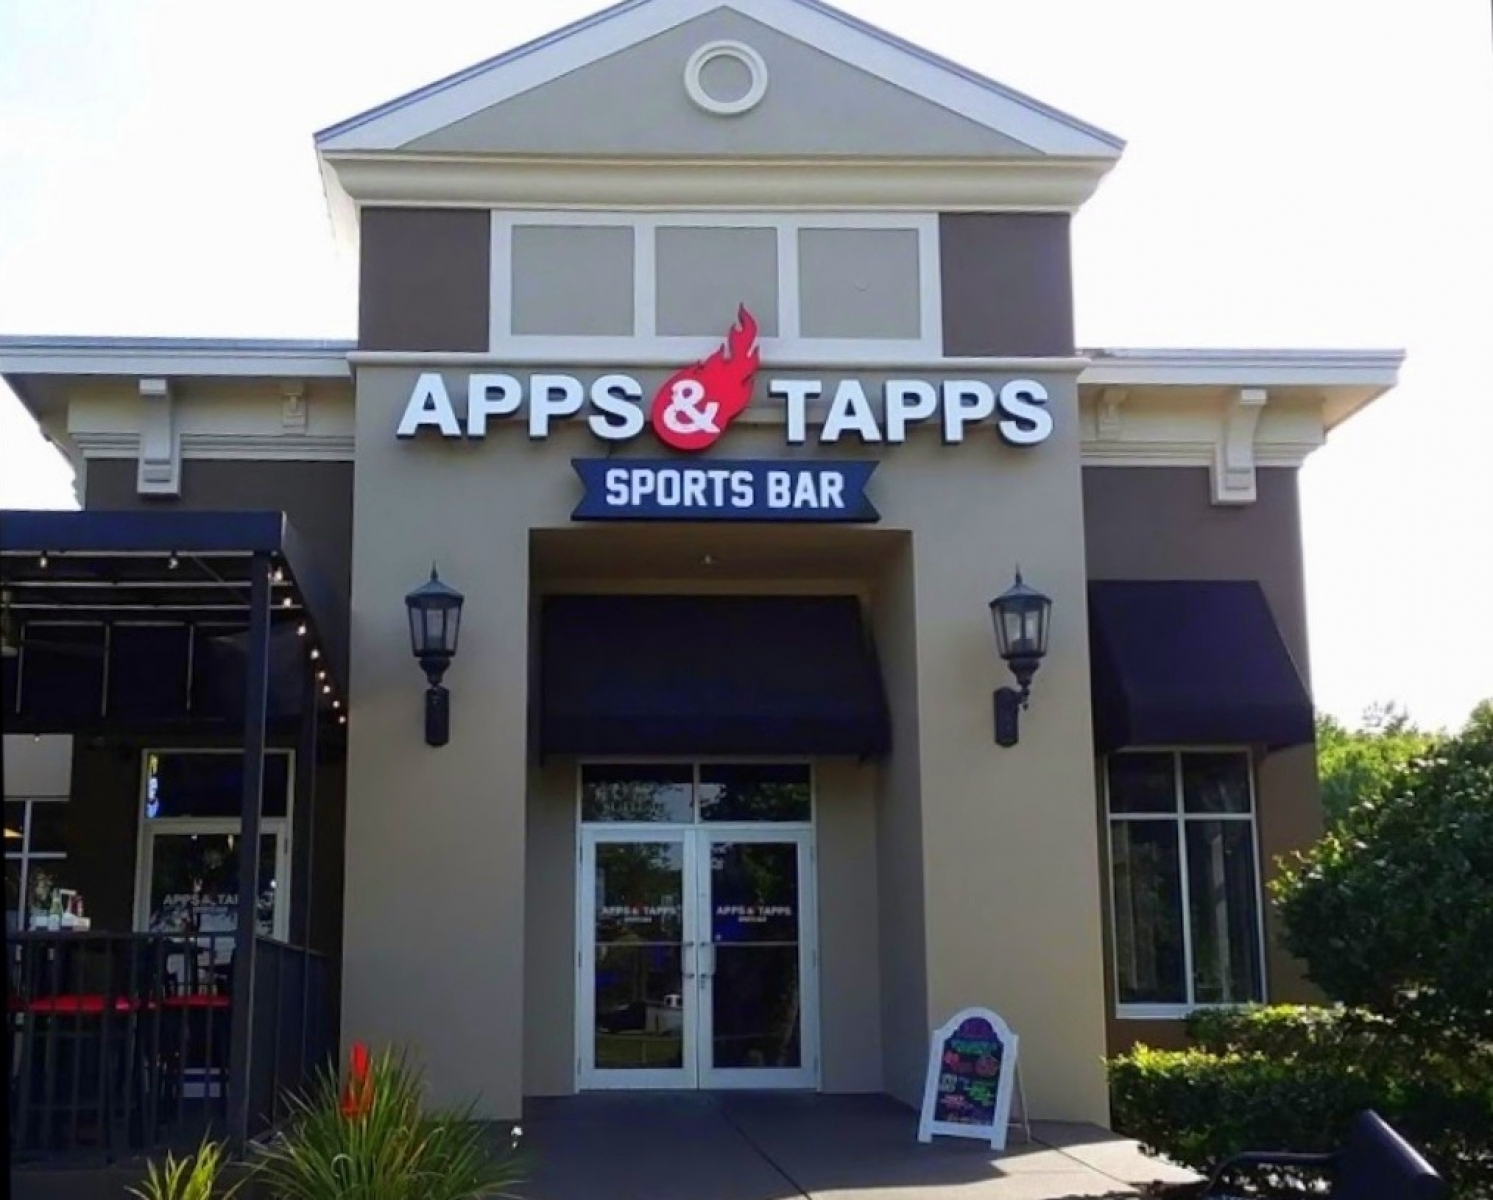 Apps & Tapps Trinity at 8 minutes drive to the east of A Glamorous Smile